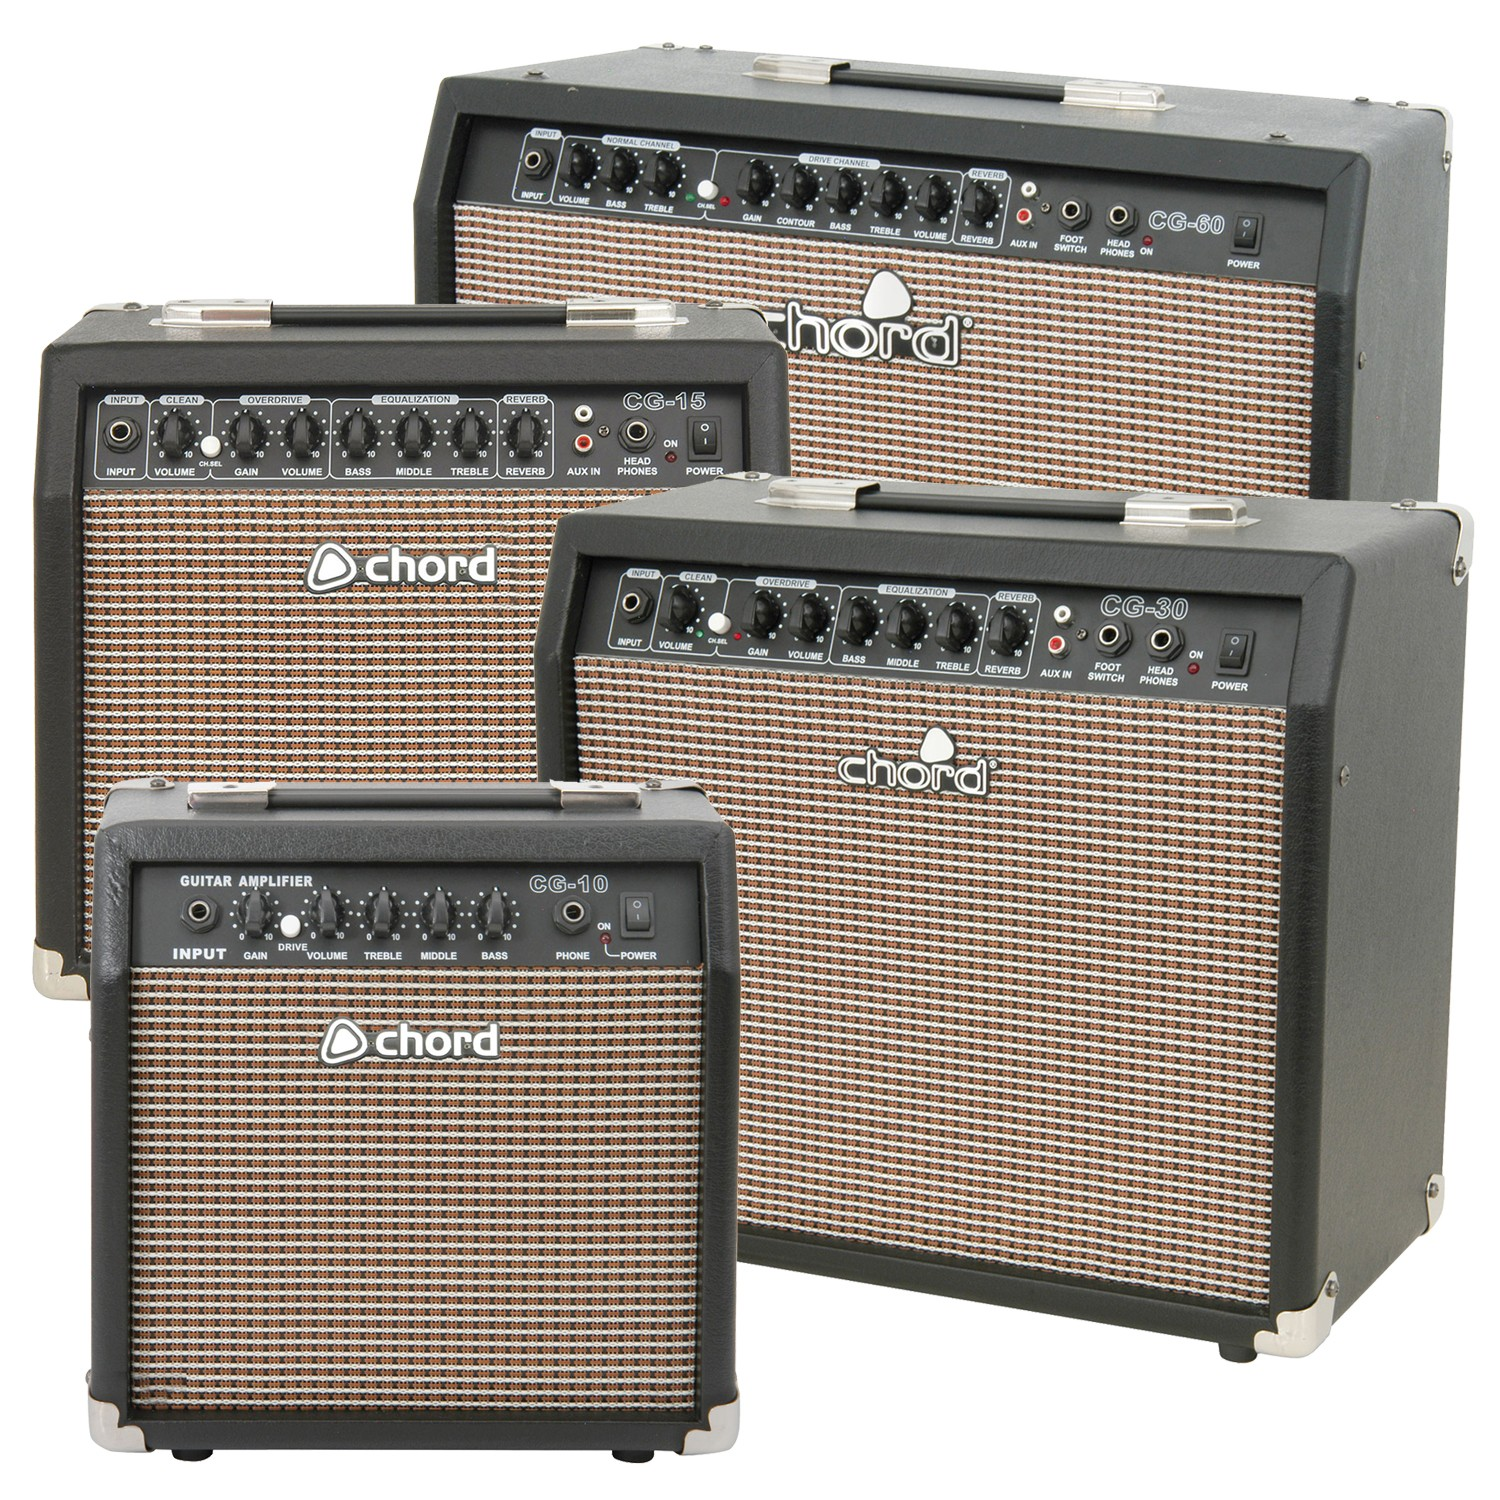 Chord Cg Series Guitar Amplifiers Sound Services